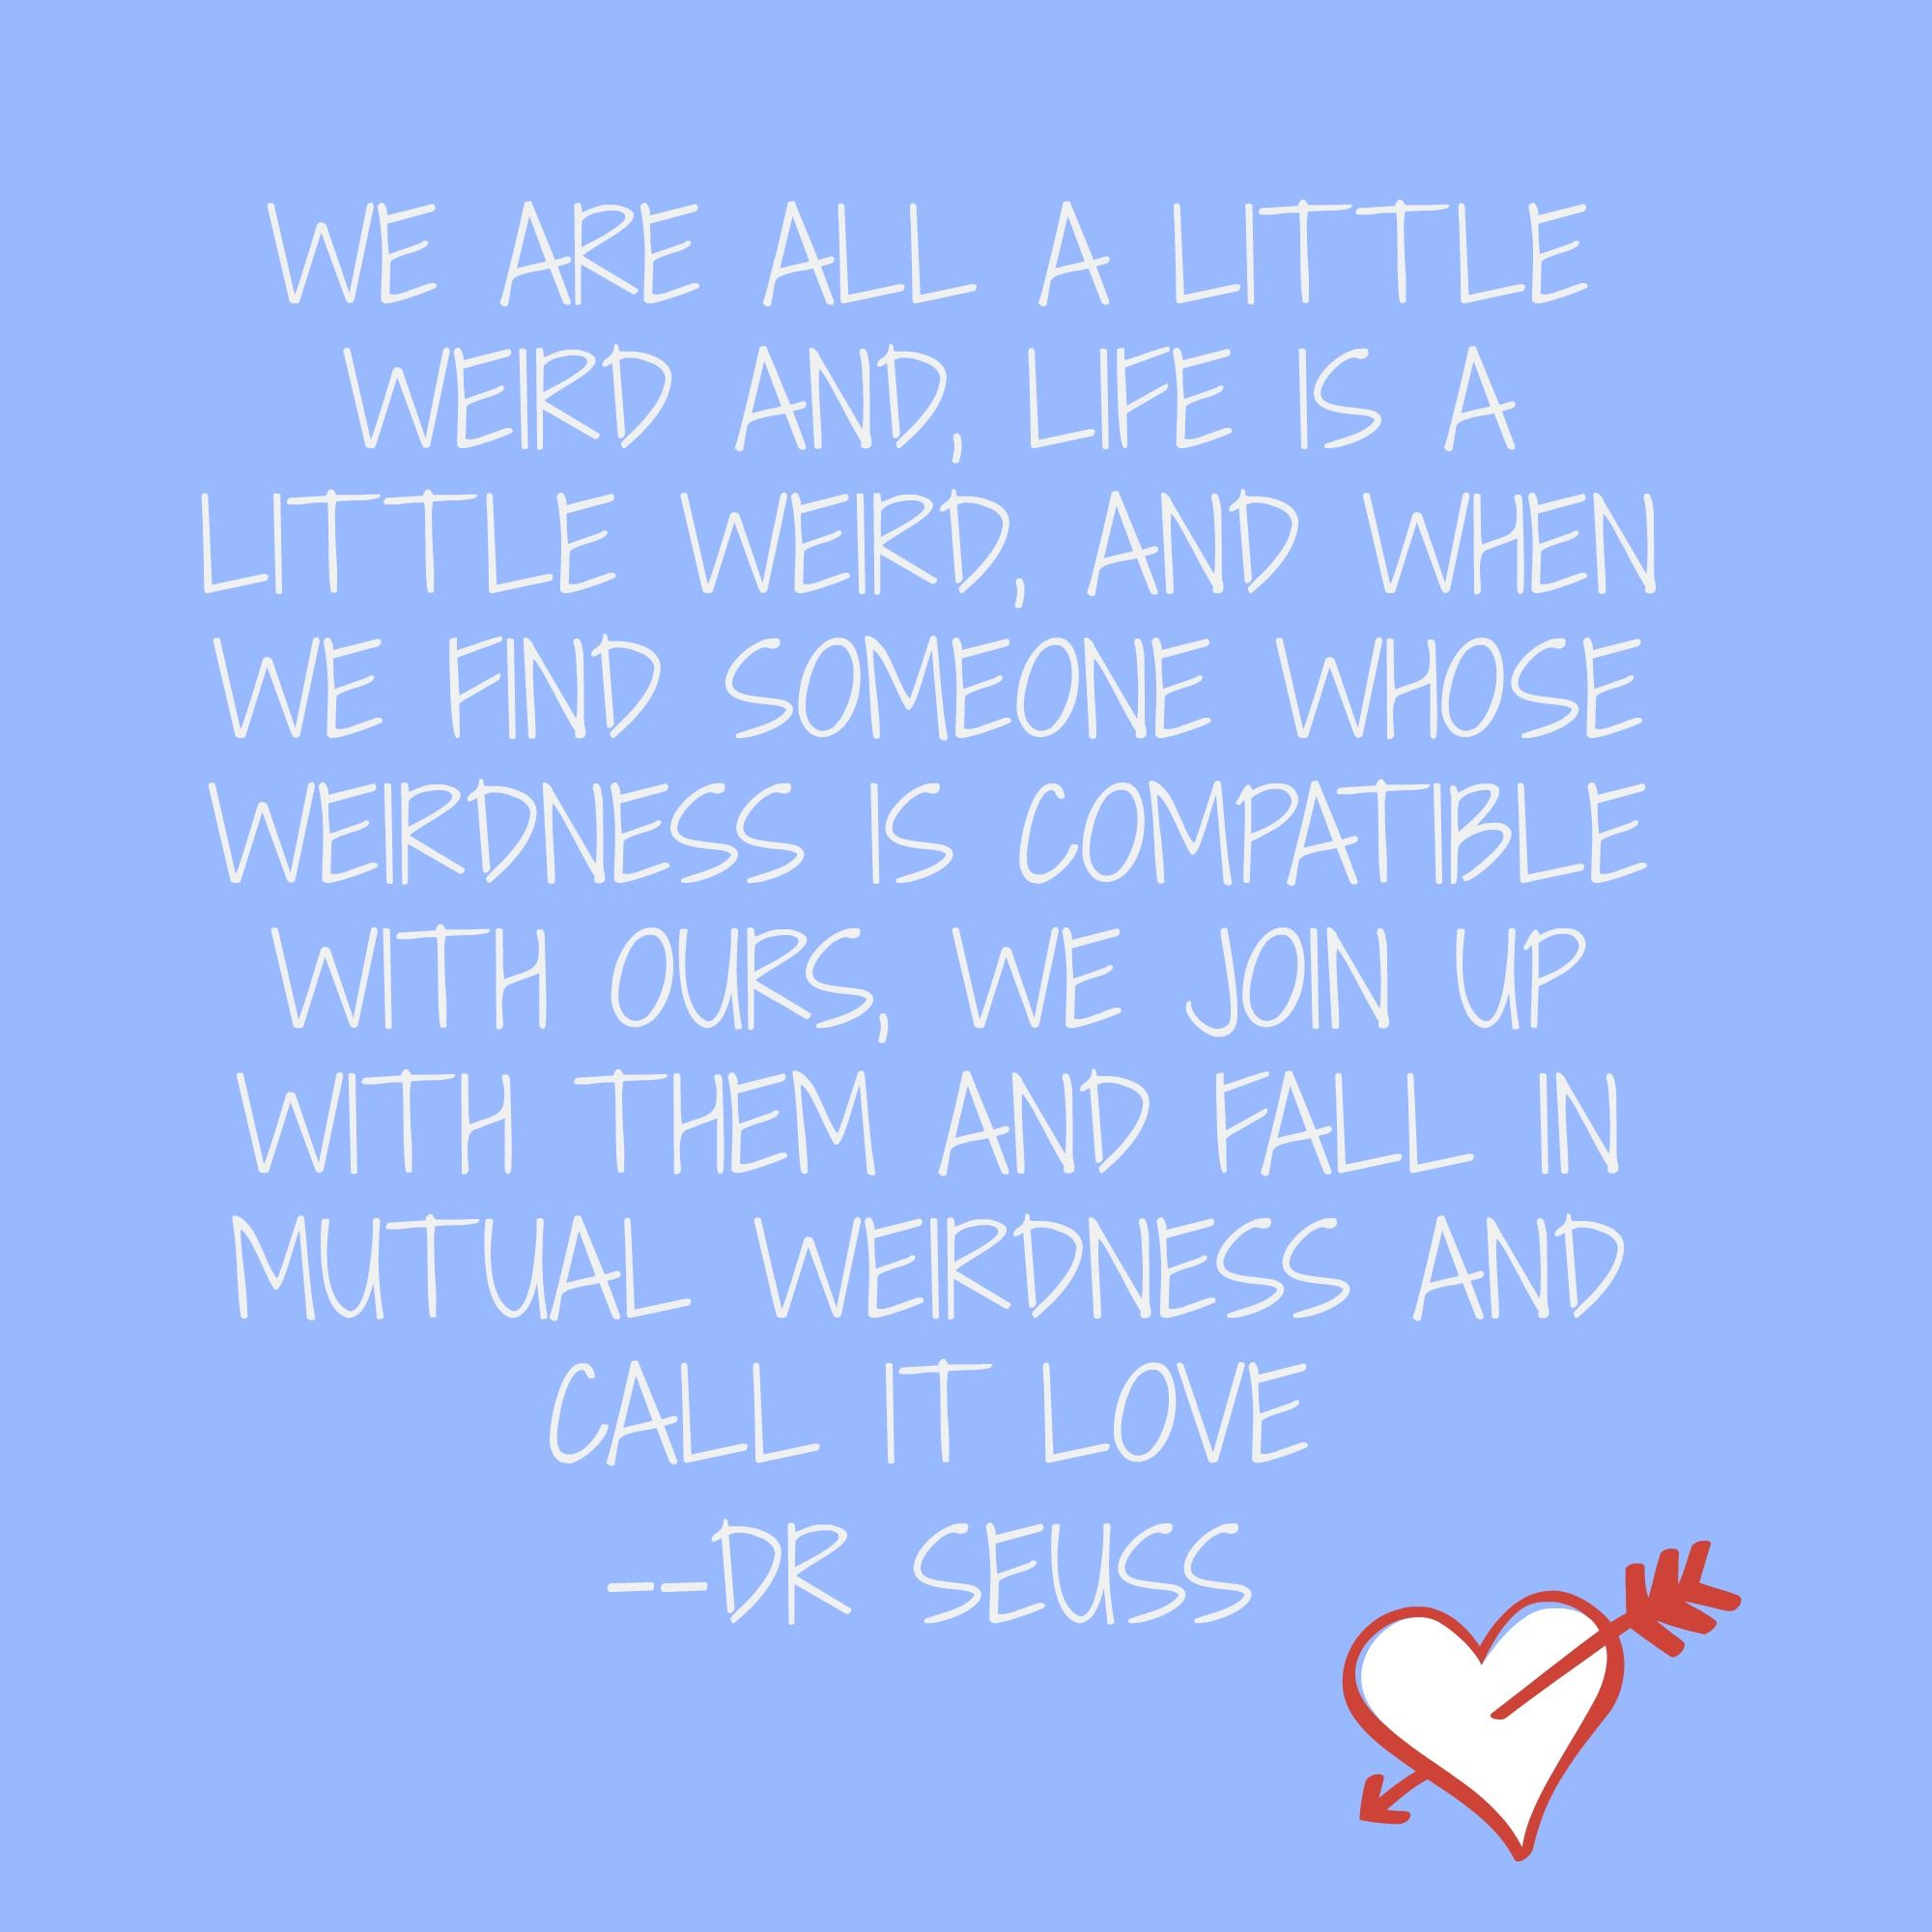 Quotes On Love And Marriage Here's A Take On Love From Drsuess To Make You Smiledrsuess